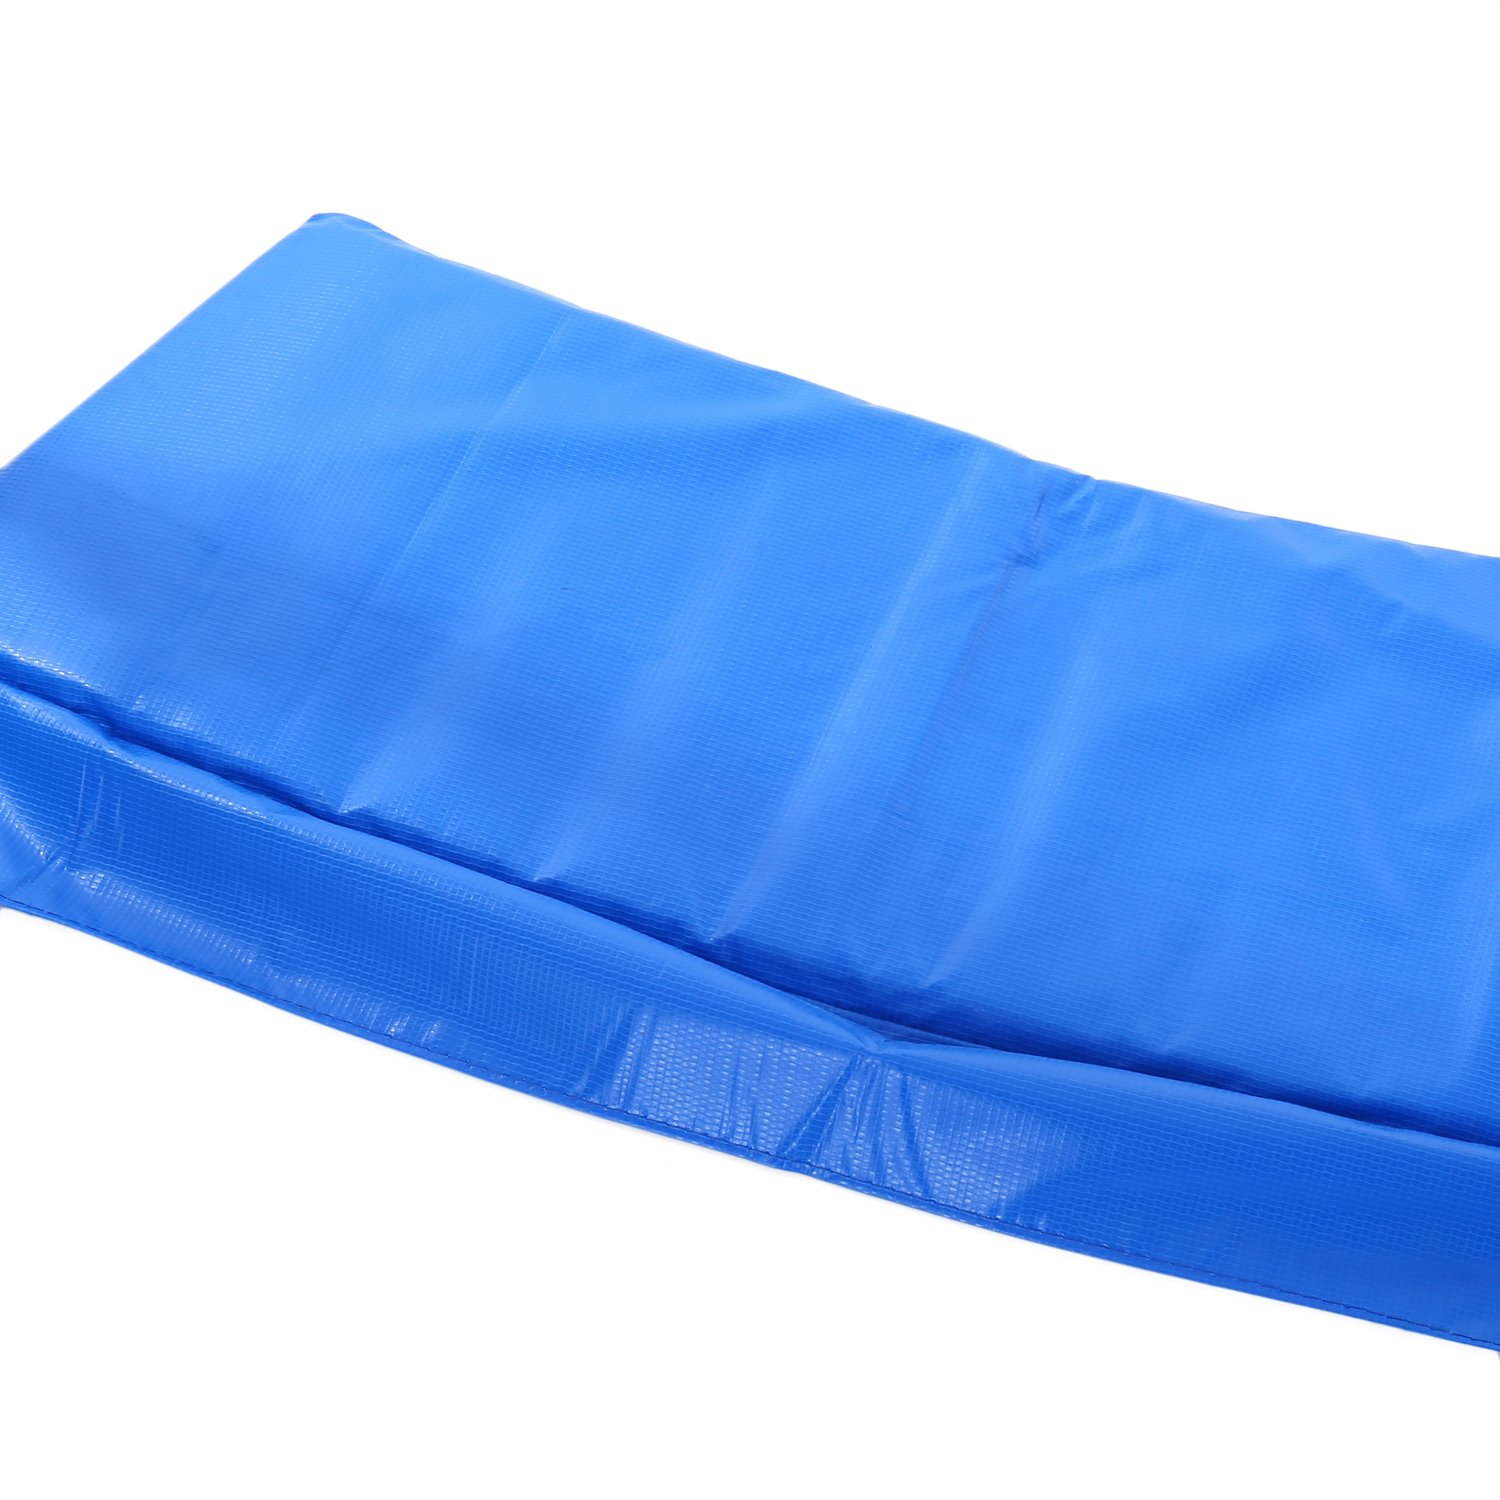 15 14 12 10 Ft Replacement Trampoline Surround PVC Pad Foam Safety Spring Cover Padding Pads (Blue, 15 Ft) by Zafuar Sports (Image #4)